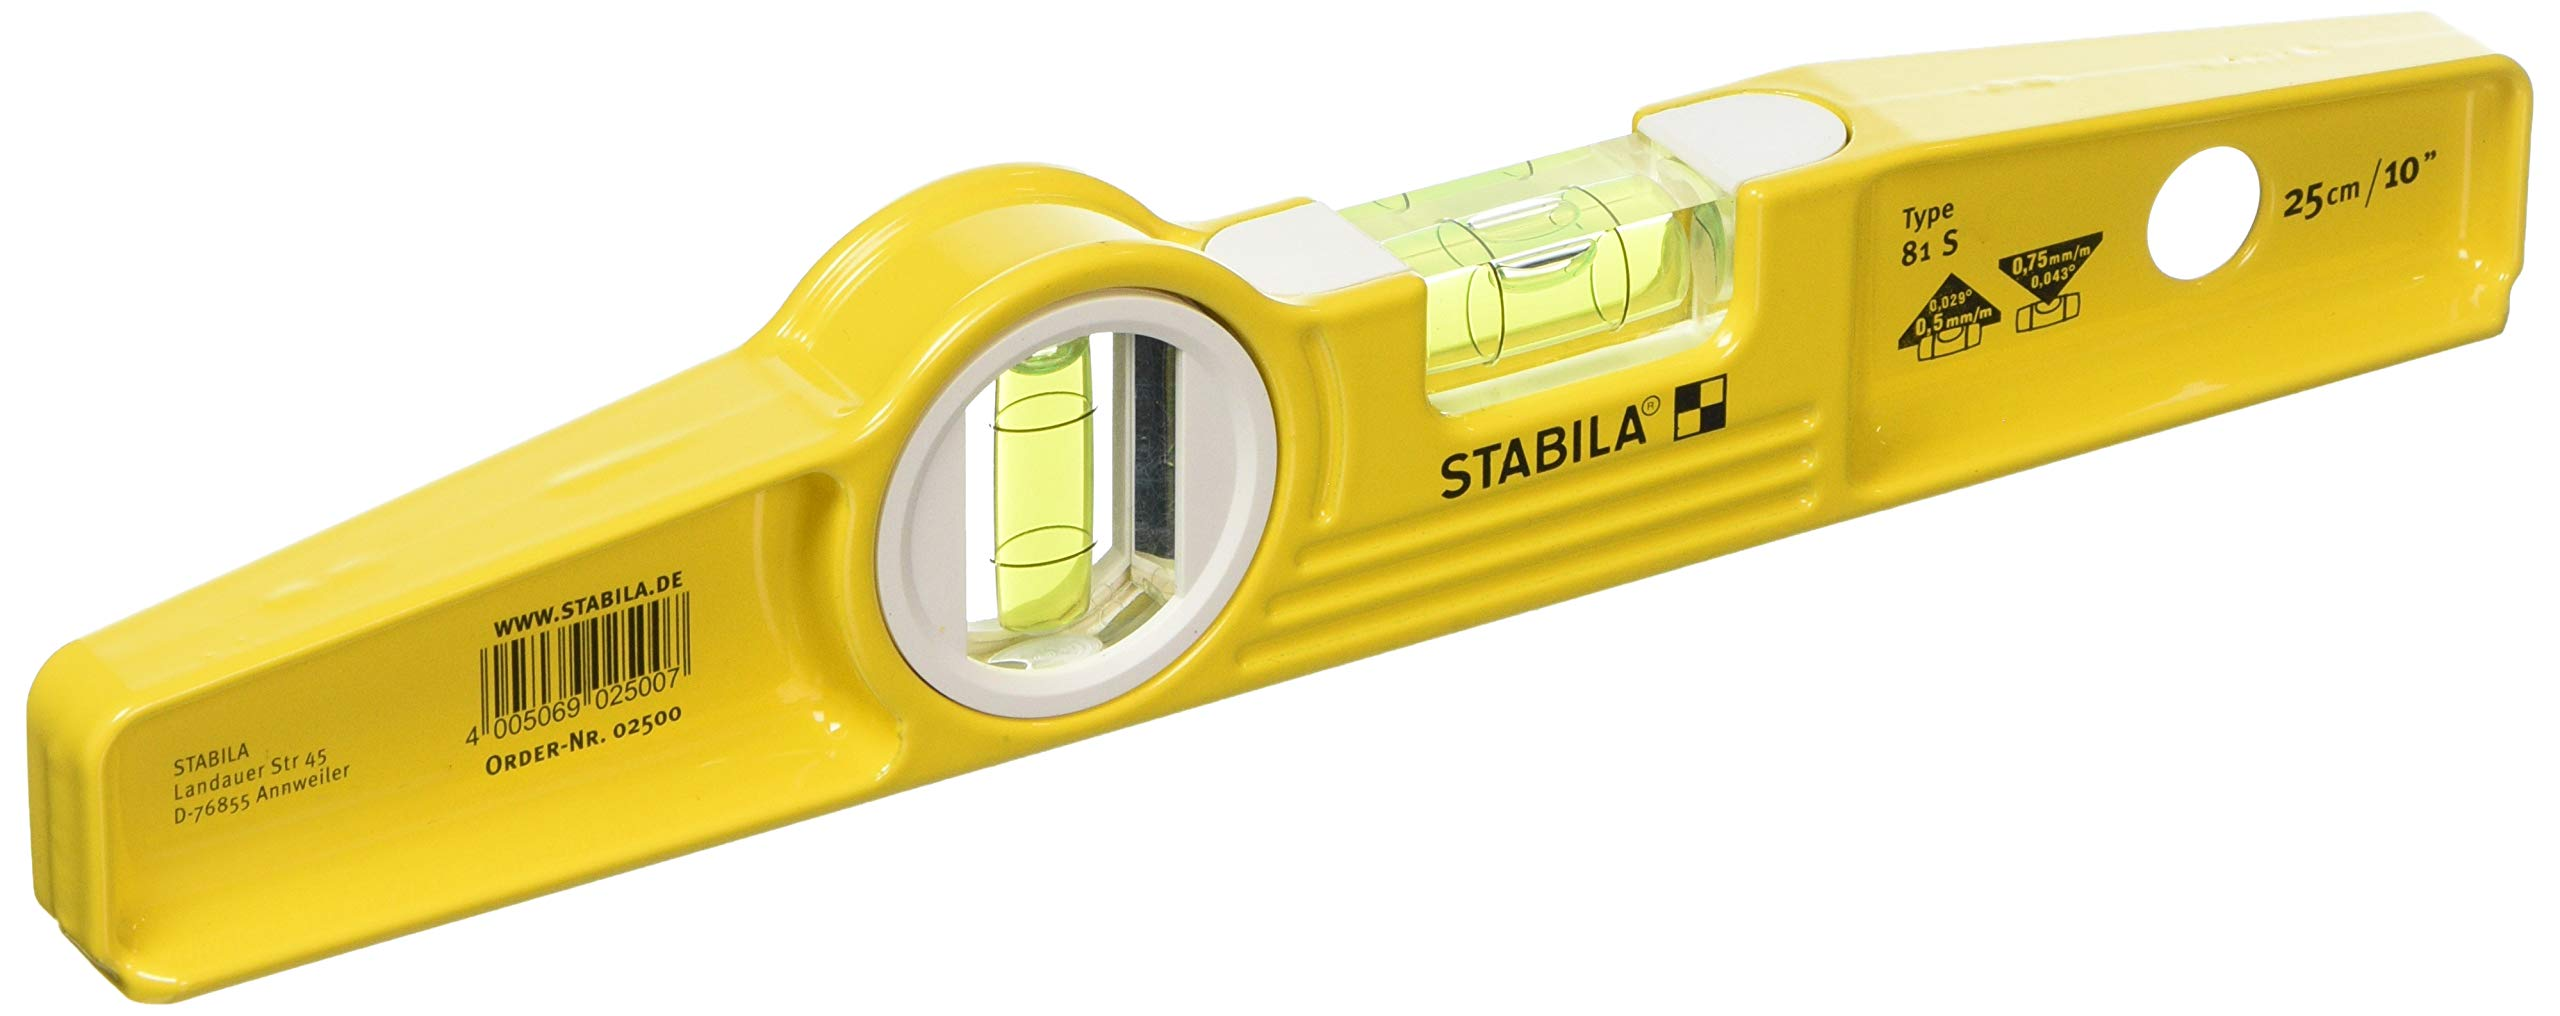 Stabila 81s Level 250cm/10in 1500